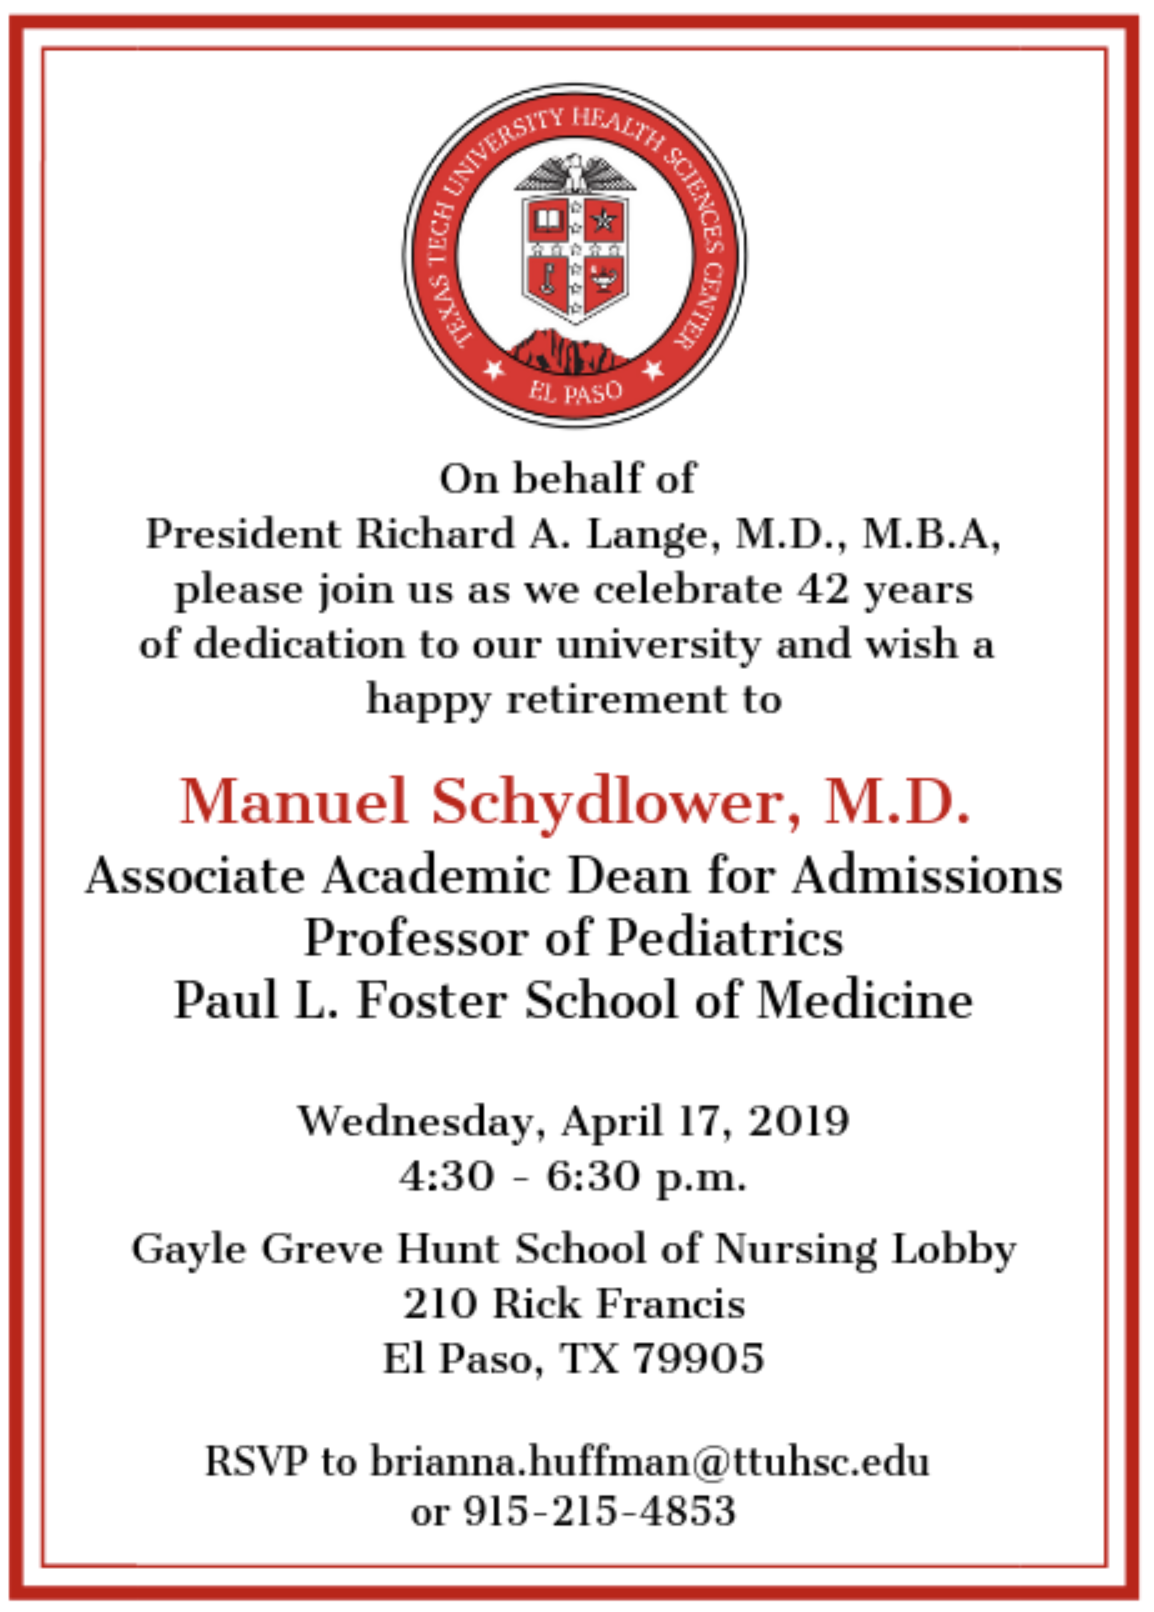 Manuel Schydlower, M.D., Retirement Reception – April 17